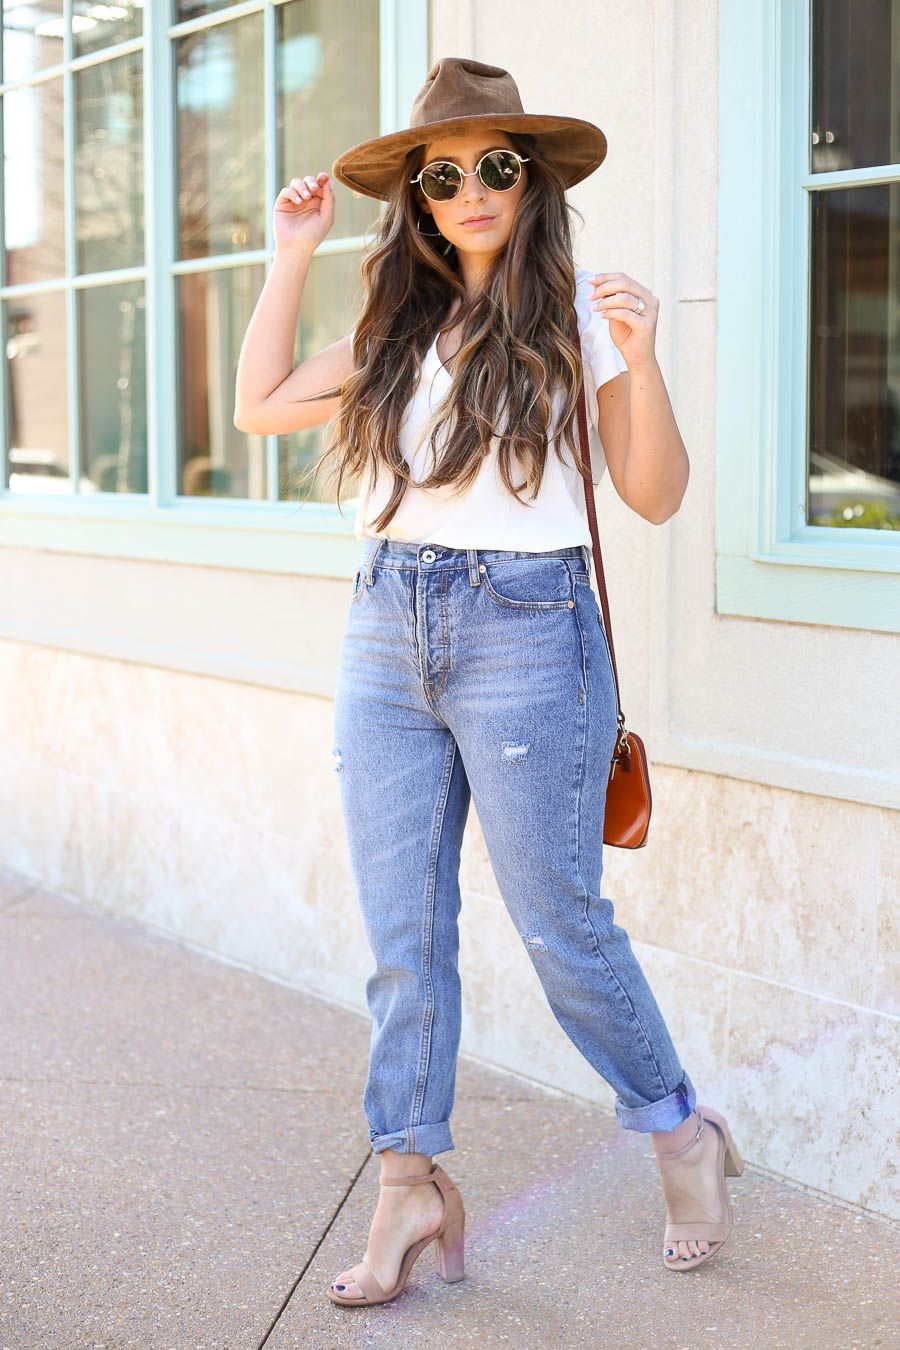 Spring Street Style  Curvy outfits, Fashion, Outfits